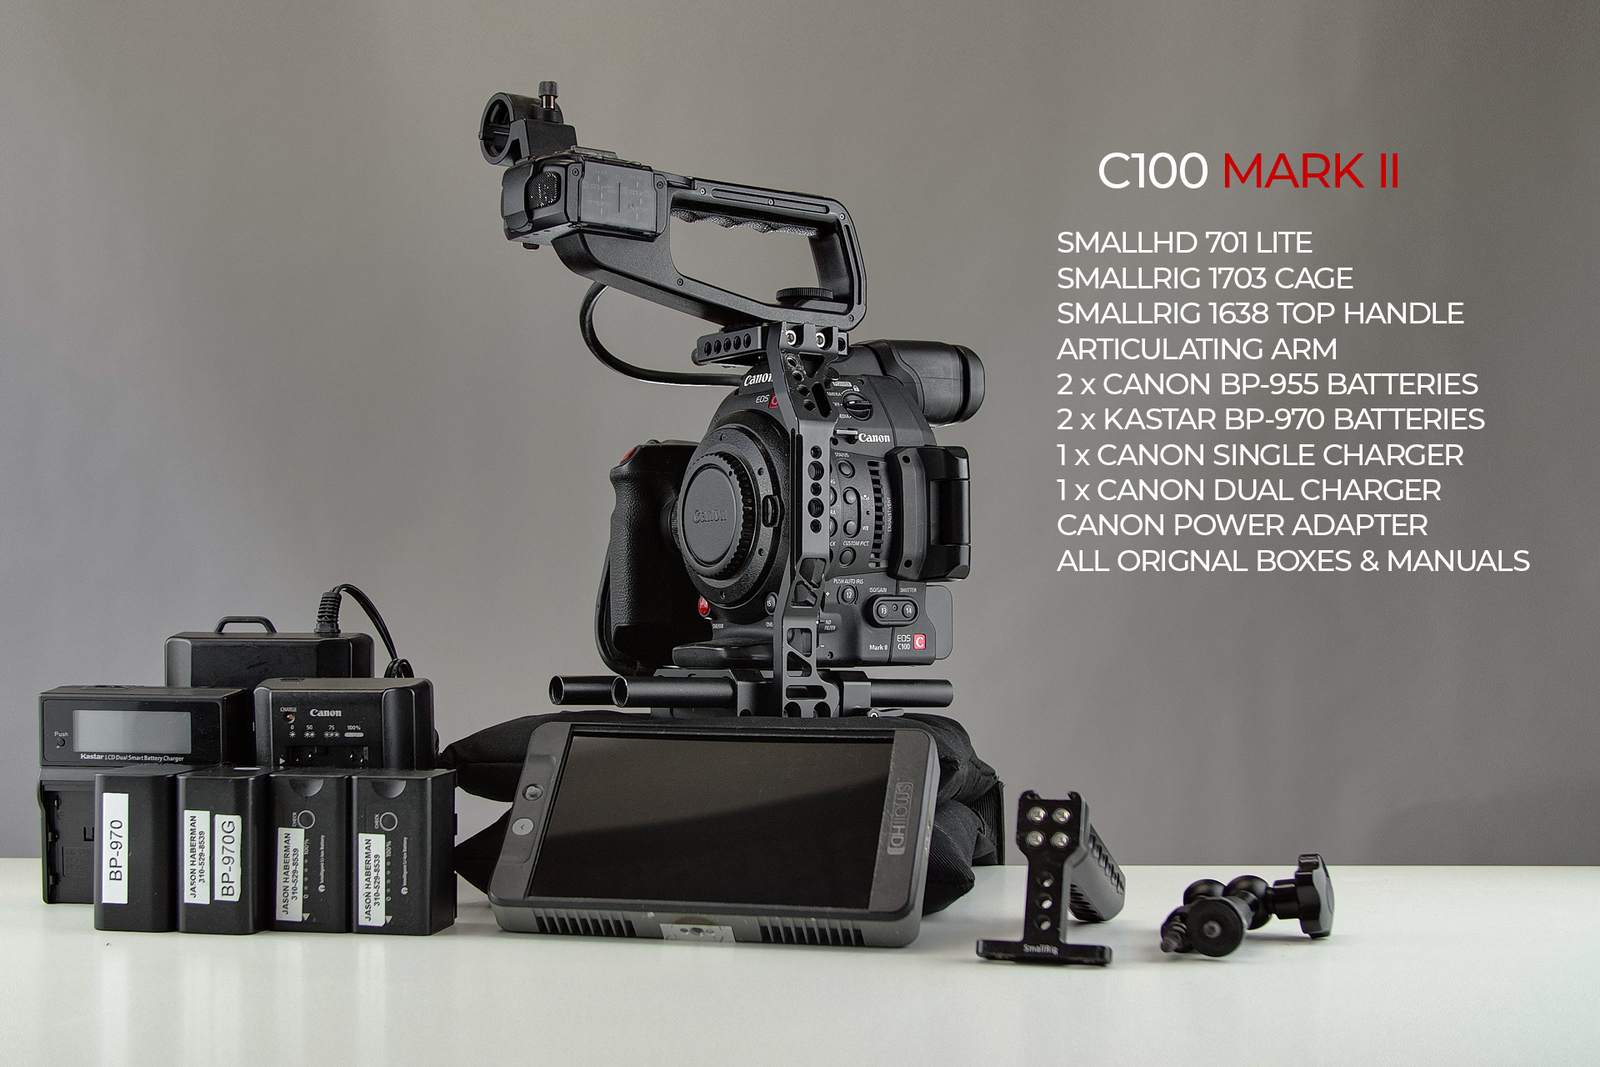 Rent a Canon EOS C100 Mark II + SmallHD + Rig | ShareGrid Los Angeles